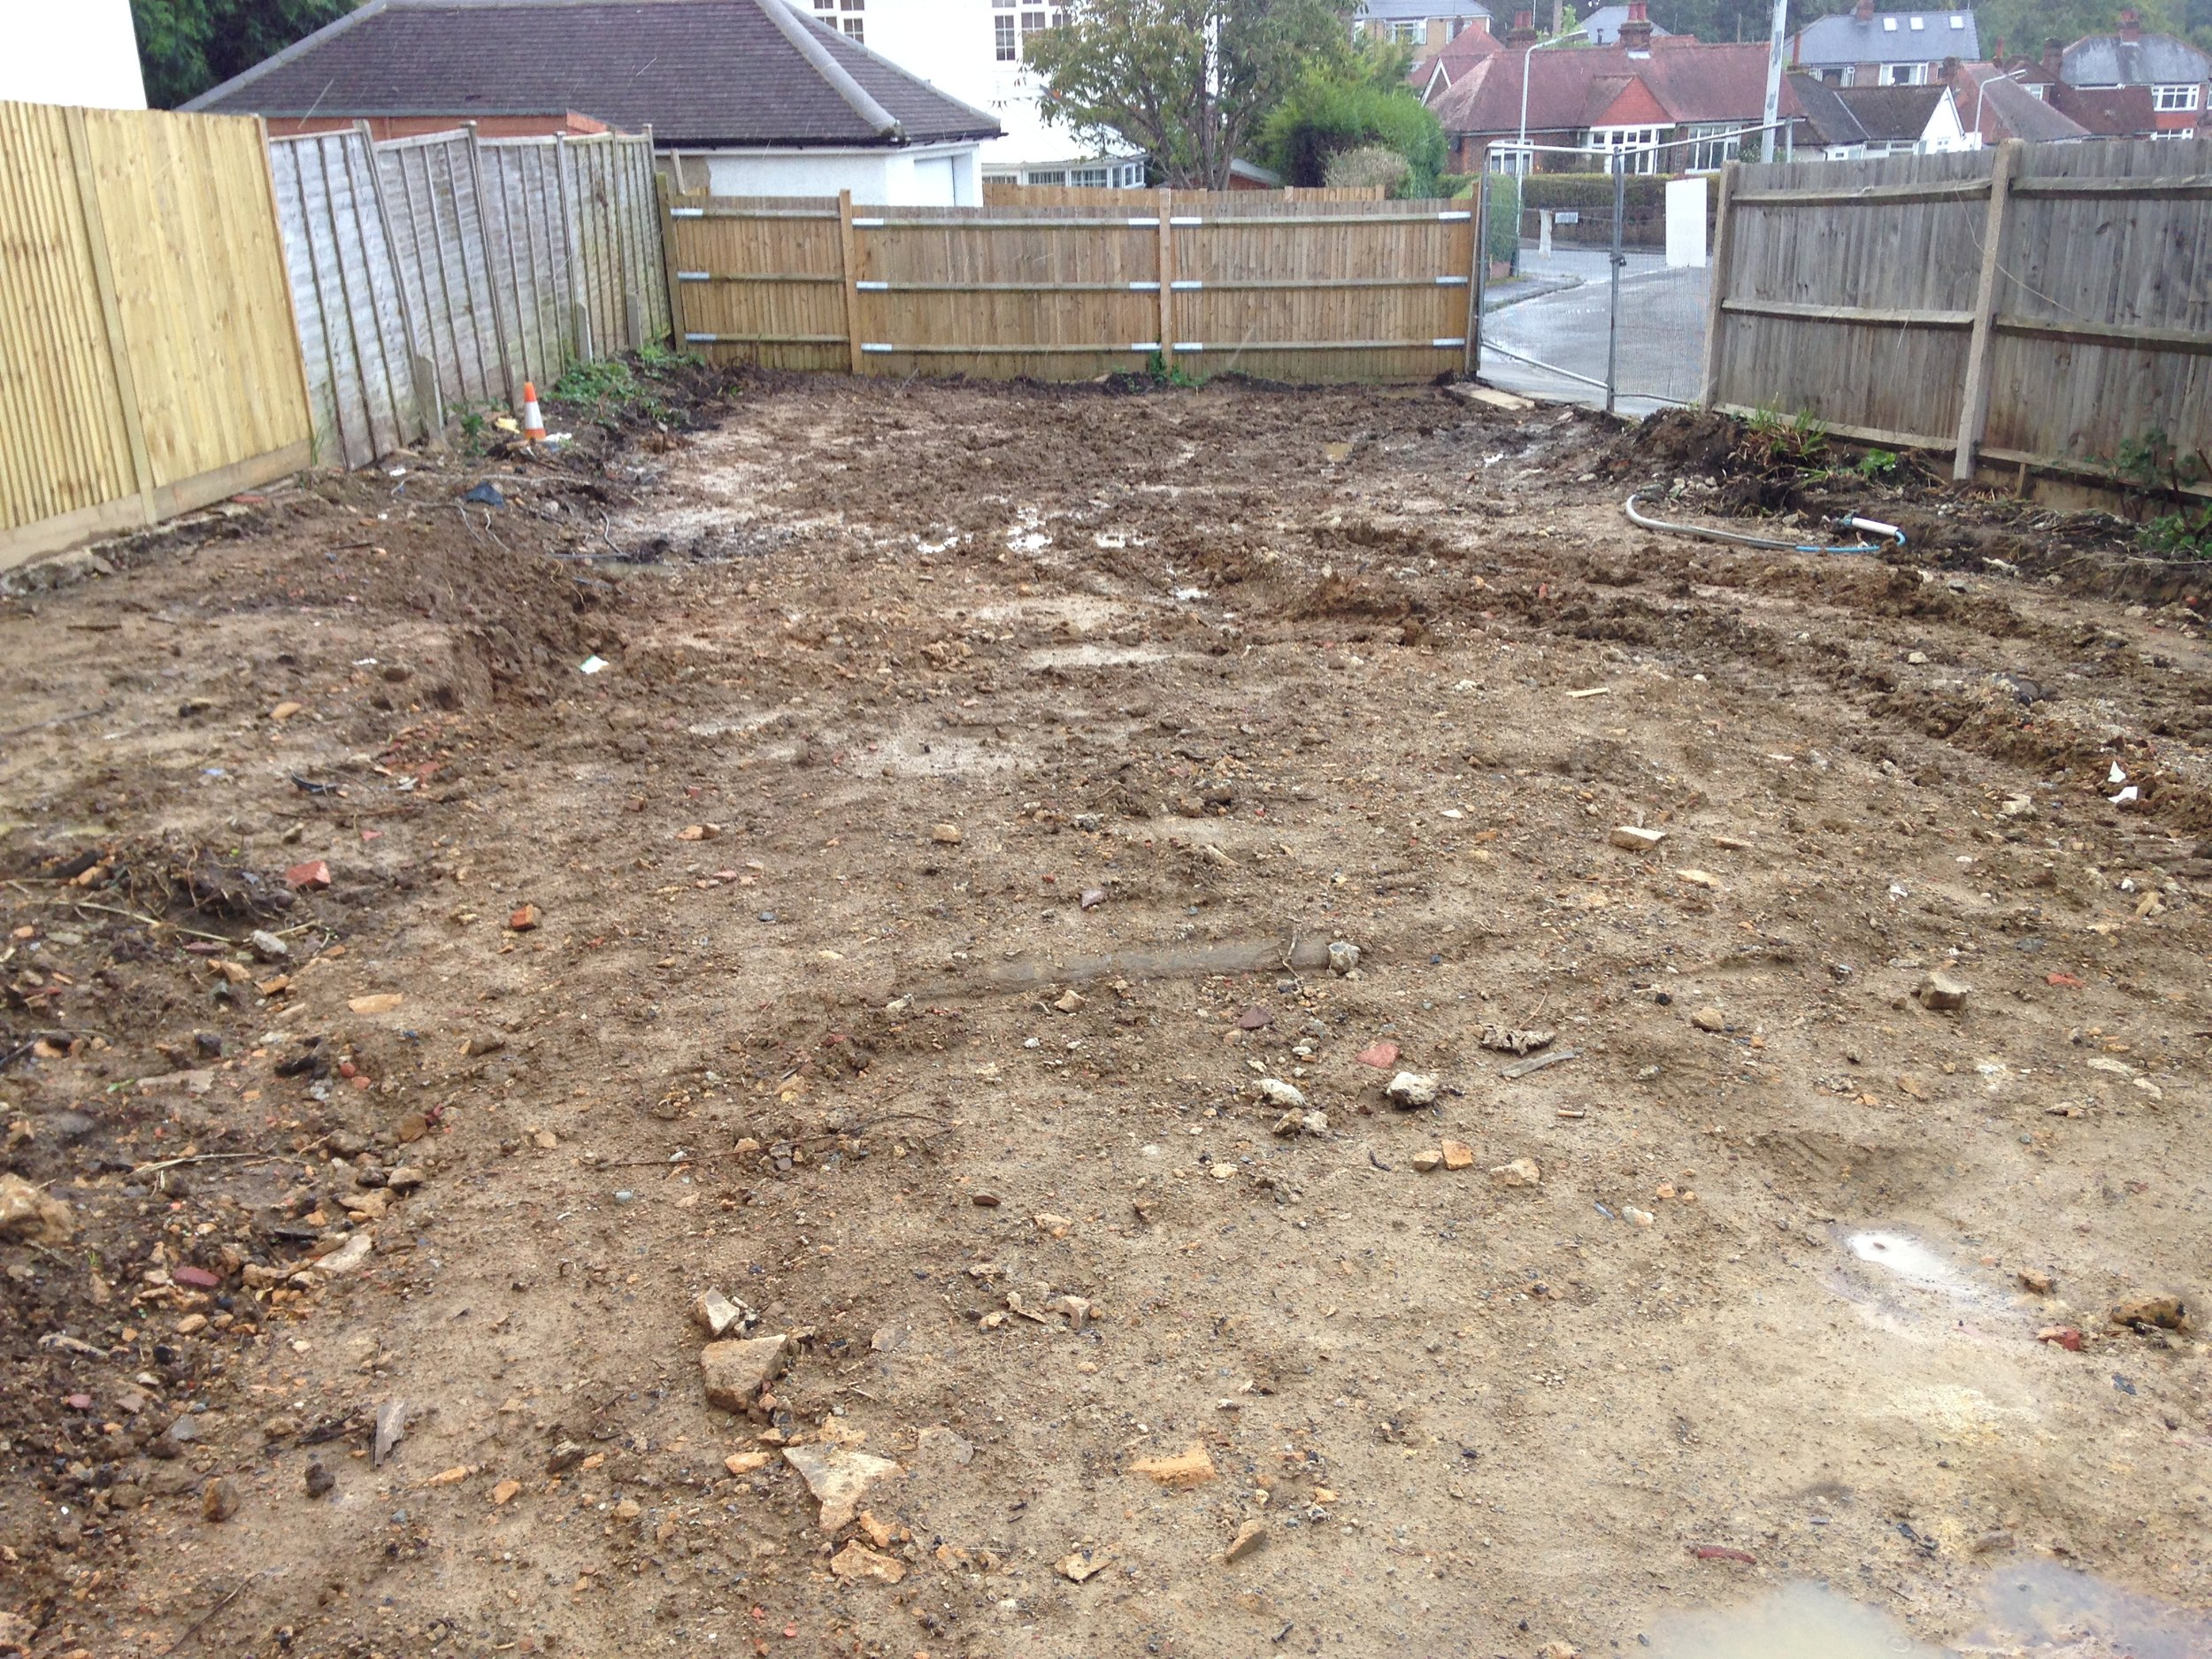 Photograph showing the site prior to construction once the garage and hard standing had been removed.